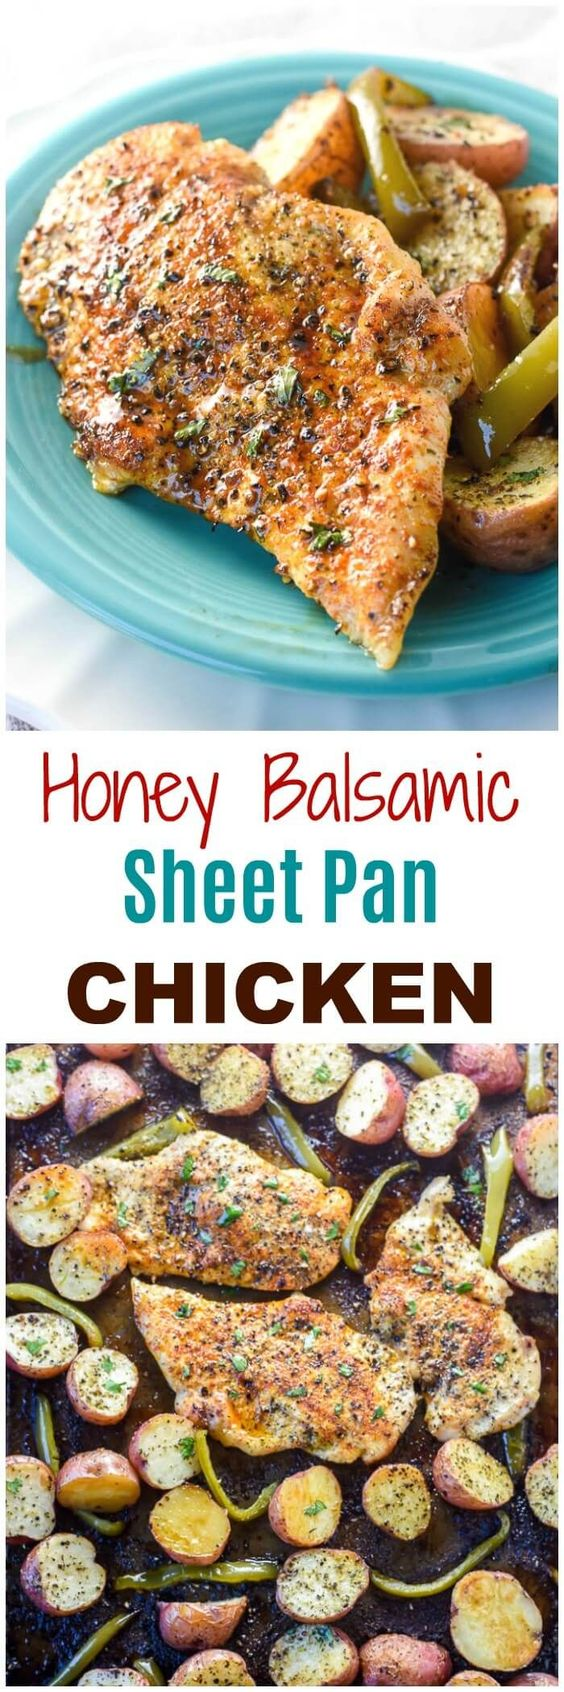 This Honey Balsamic Sheet Pan Chicken allows you to bake an entire chicken dinner on a sheet pan. Easy! Add a delicious Honey Balsamic sauce and you have a winner chicken dinner! via @flavormosaic